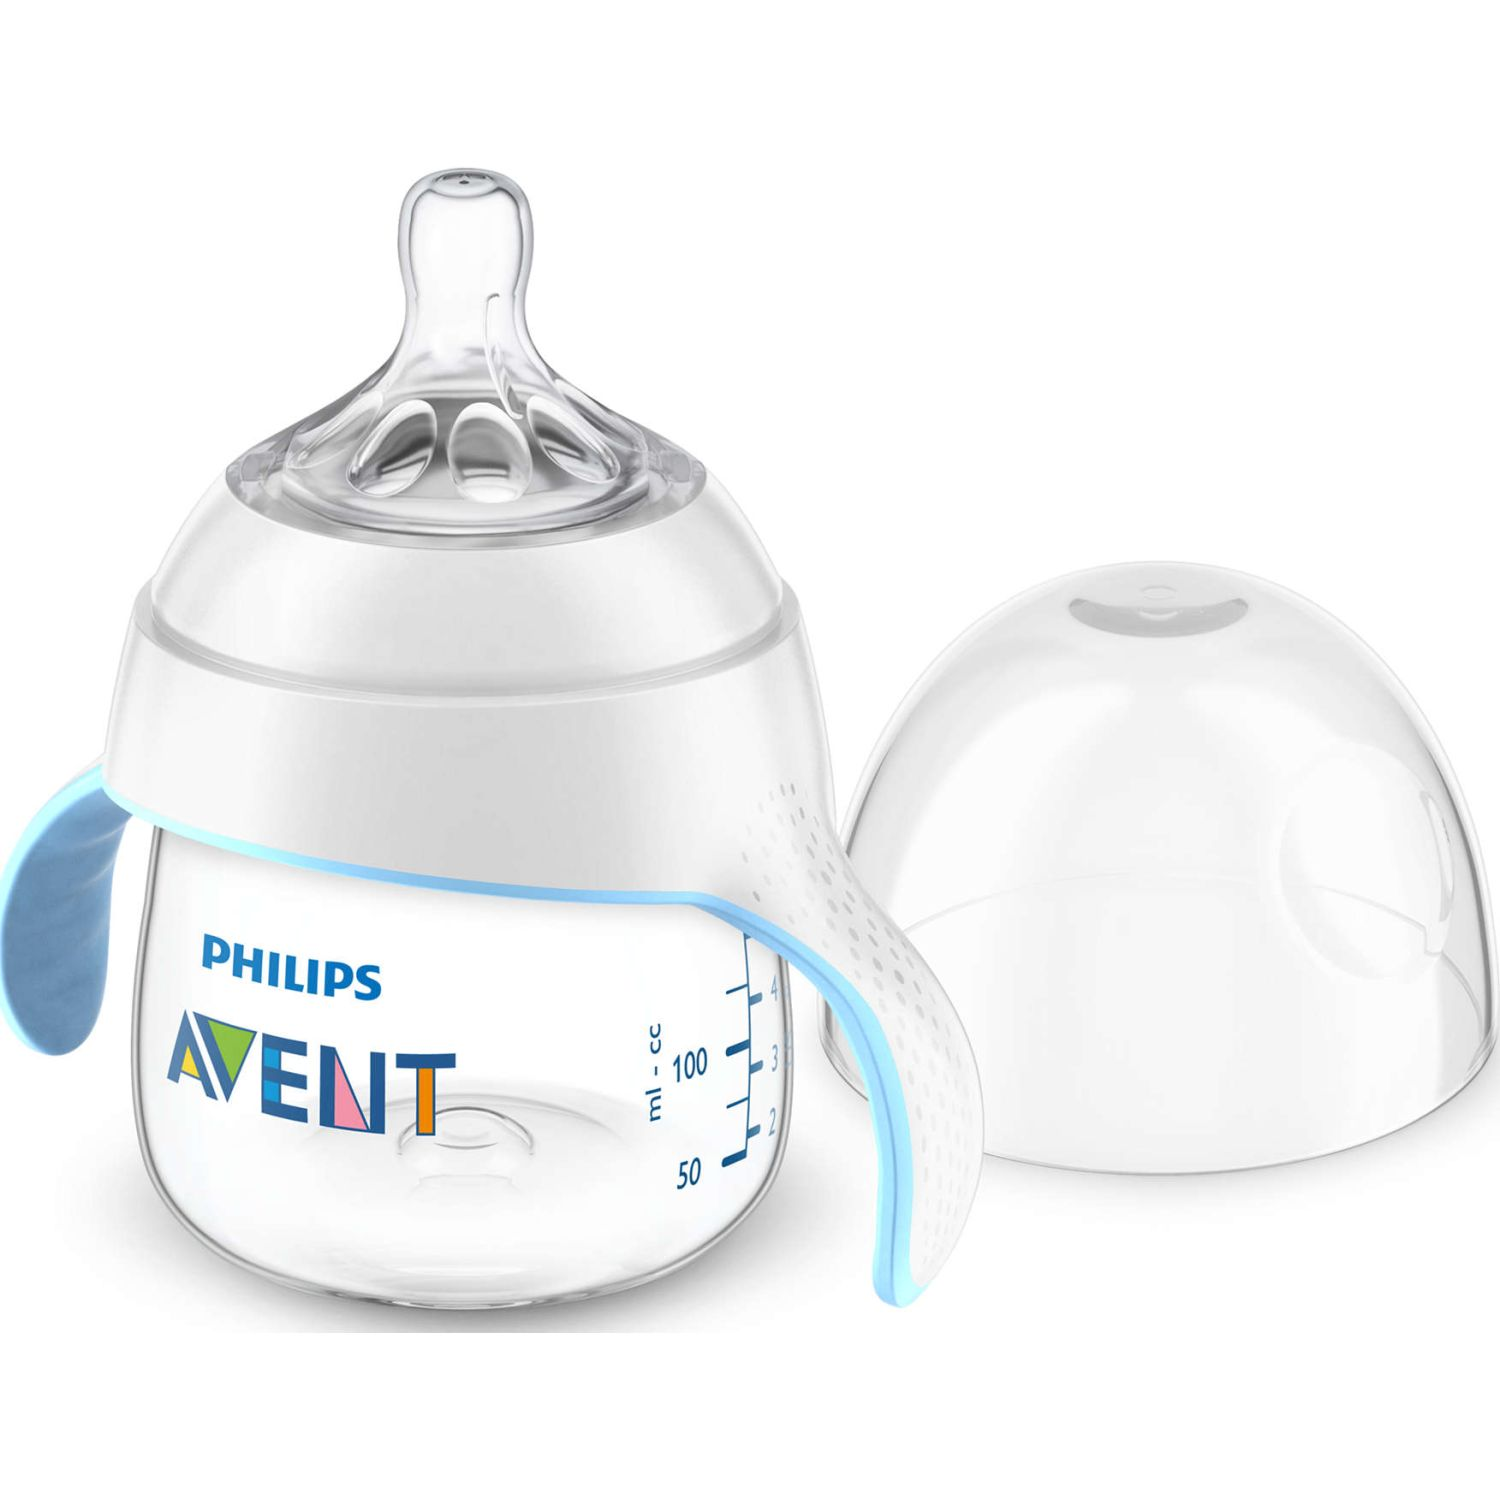 PHILIPS AVENT KIT TRANSICIÓN BIBERON A VASO NATURAL 2.0 150ML Transparente Biberones